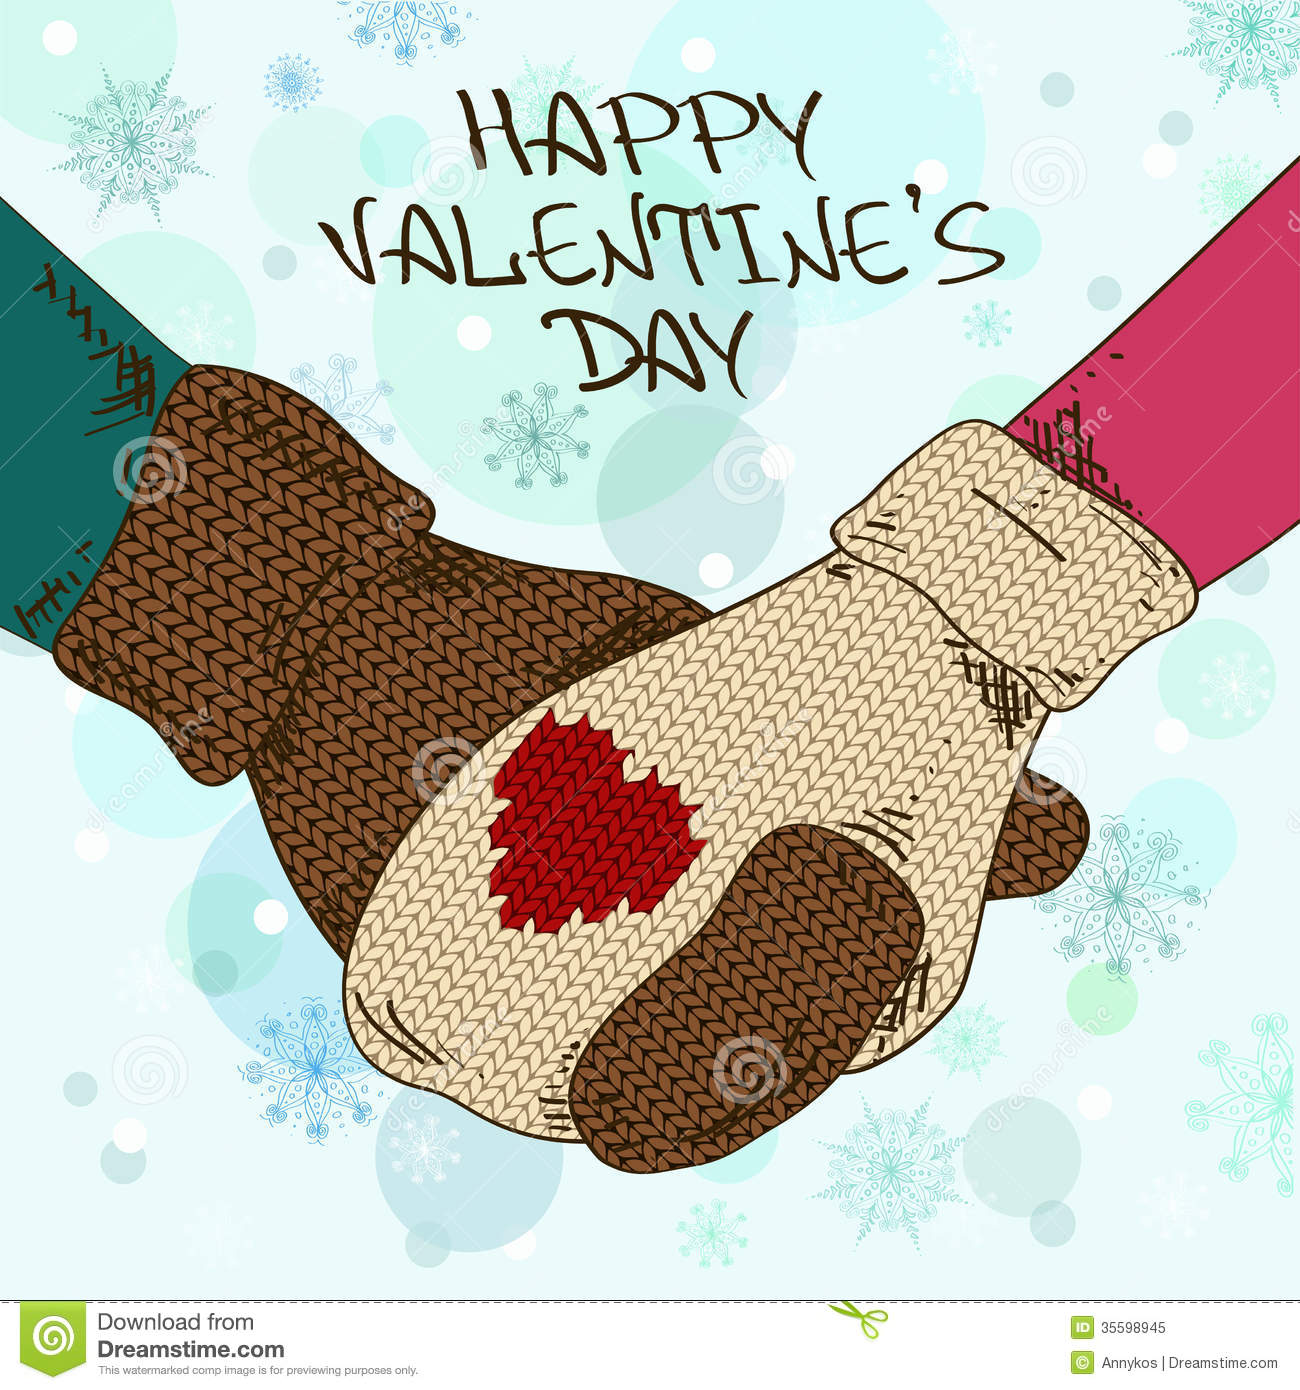 Illustration With Holding Hands Couple In Mittens Royalty Free Stock Photo - ...